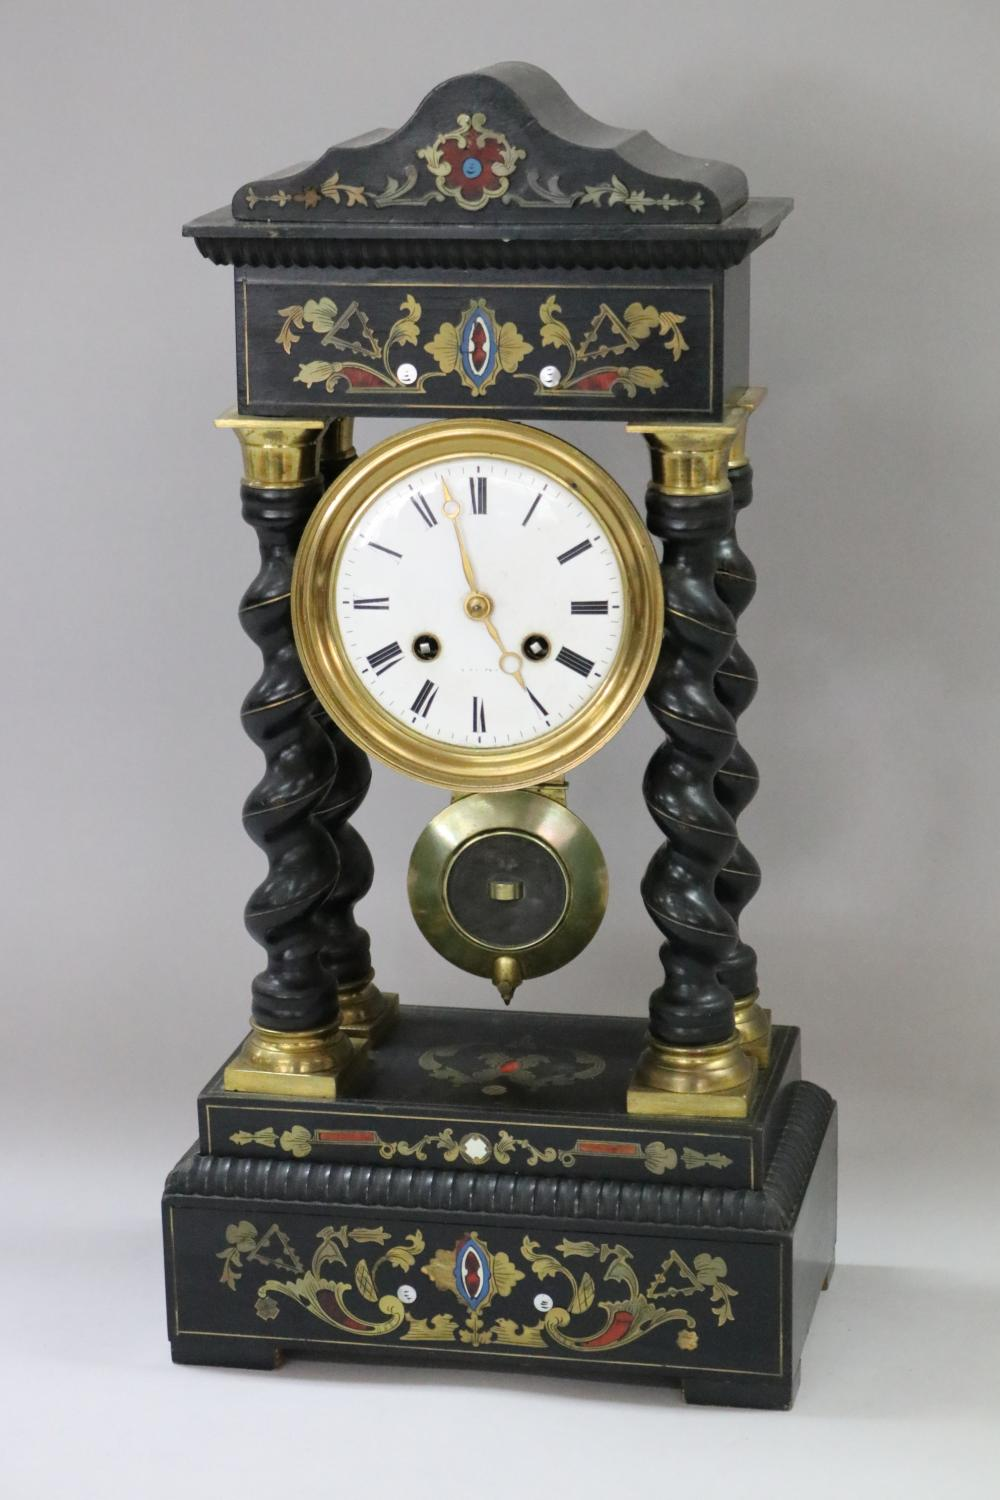 Antique French Napoleon III portico mantle clock, brass, mother of pearl & other inlay decorated, has key & pendulum, approx 45cm H x 22cm W x 13cm D